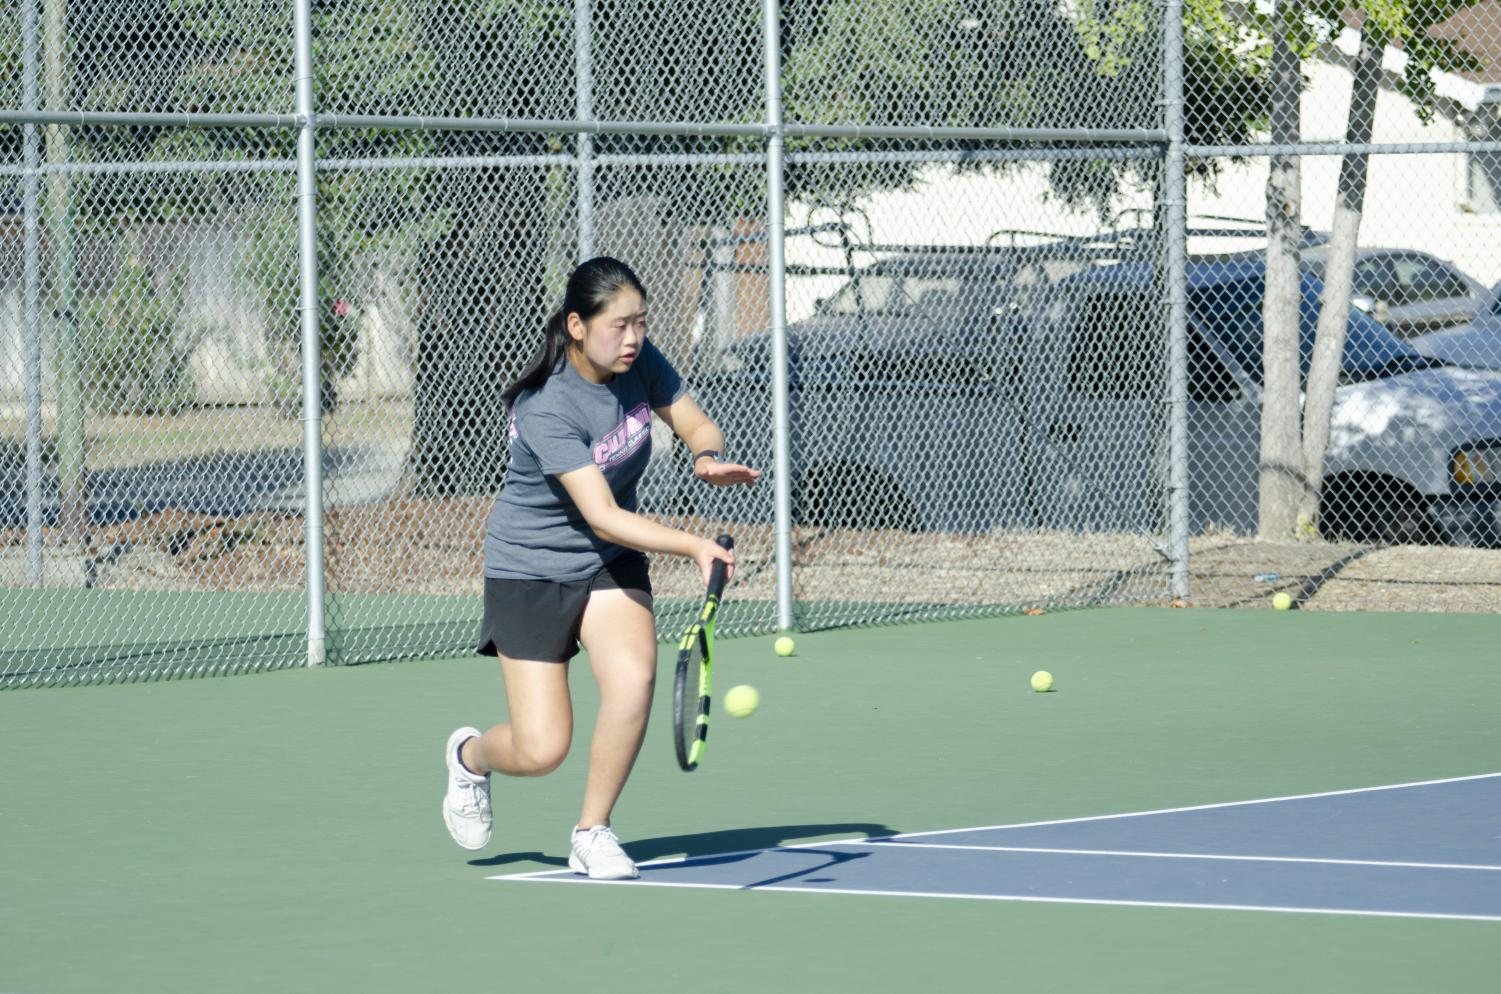 Tina+Zhong+%2810%29+hits+a+forehand+during+practice+at+the+Blackford+tennis+courts.+The+girls+will+play+their+next+match+against+Homestead+High+on+Sept.+23.+